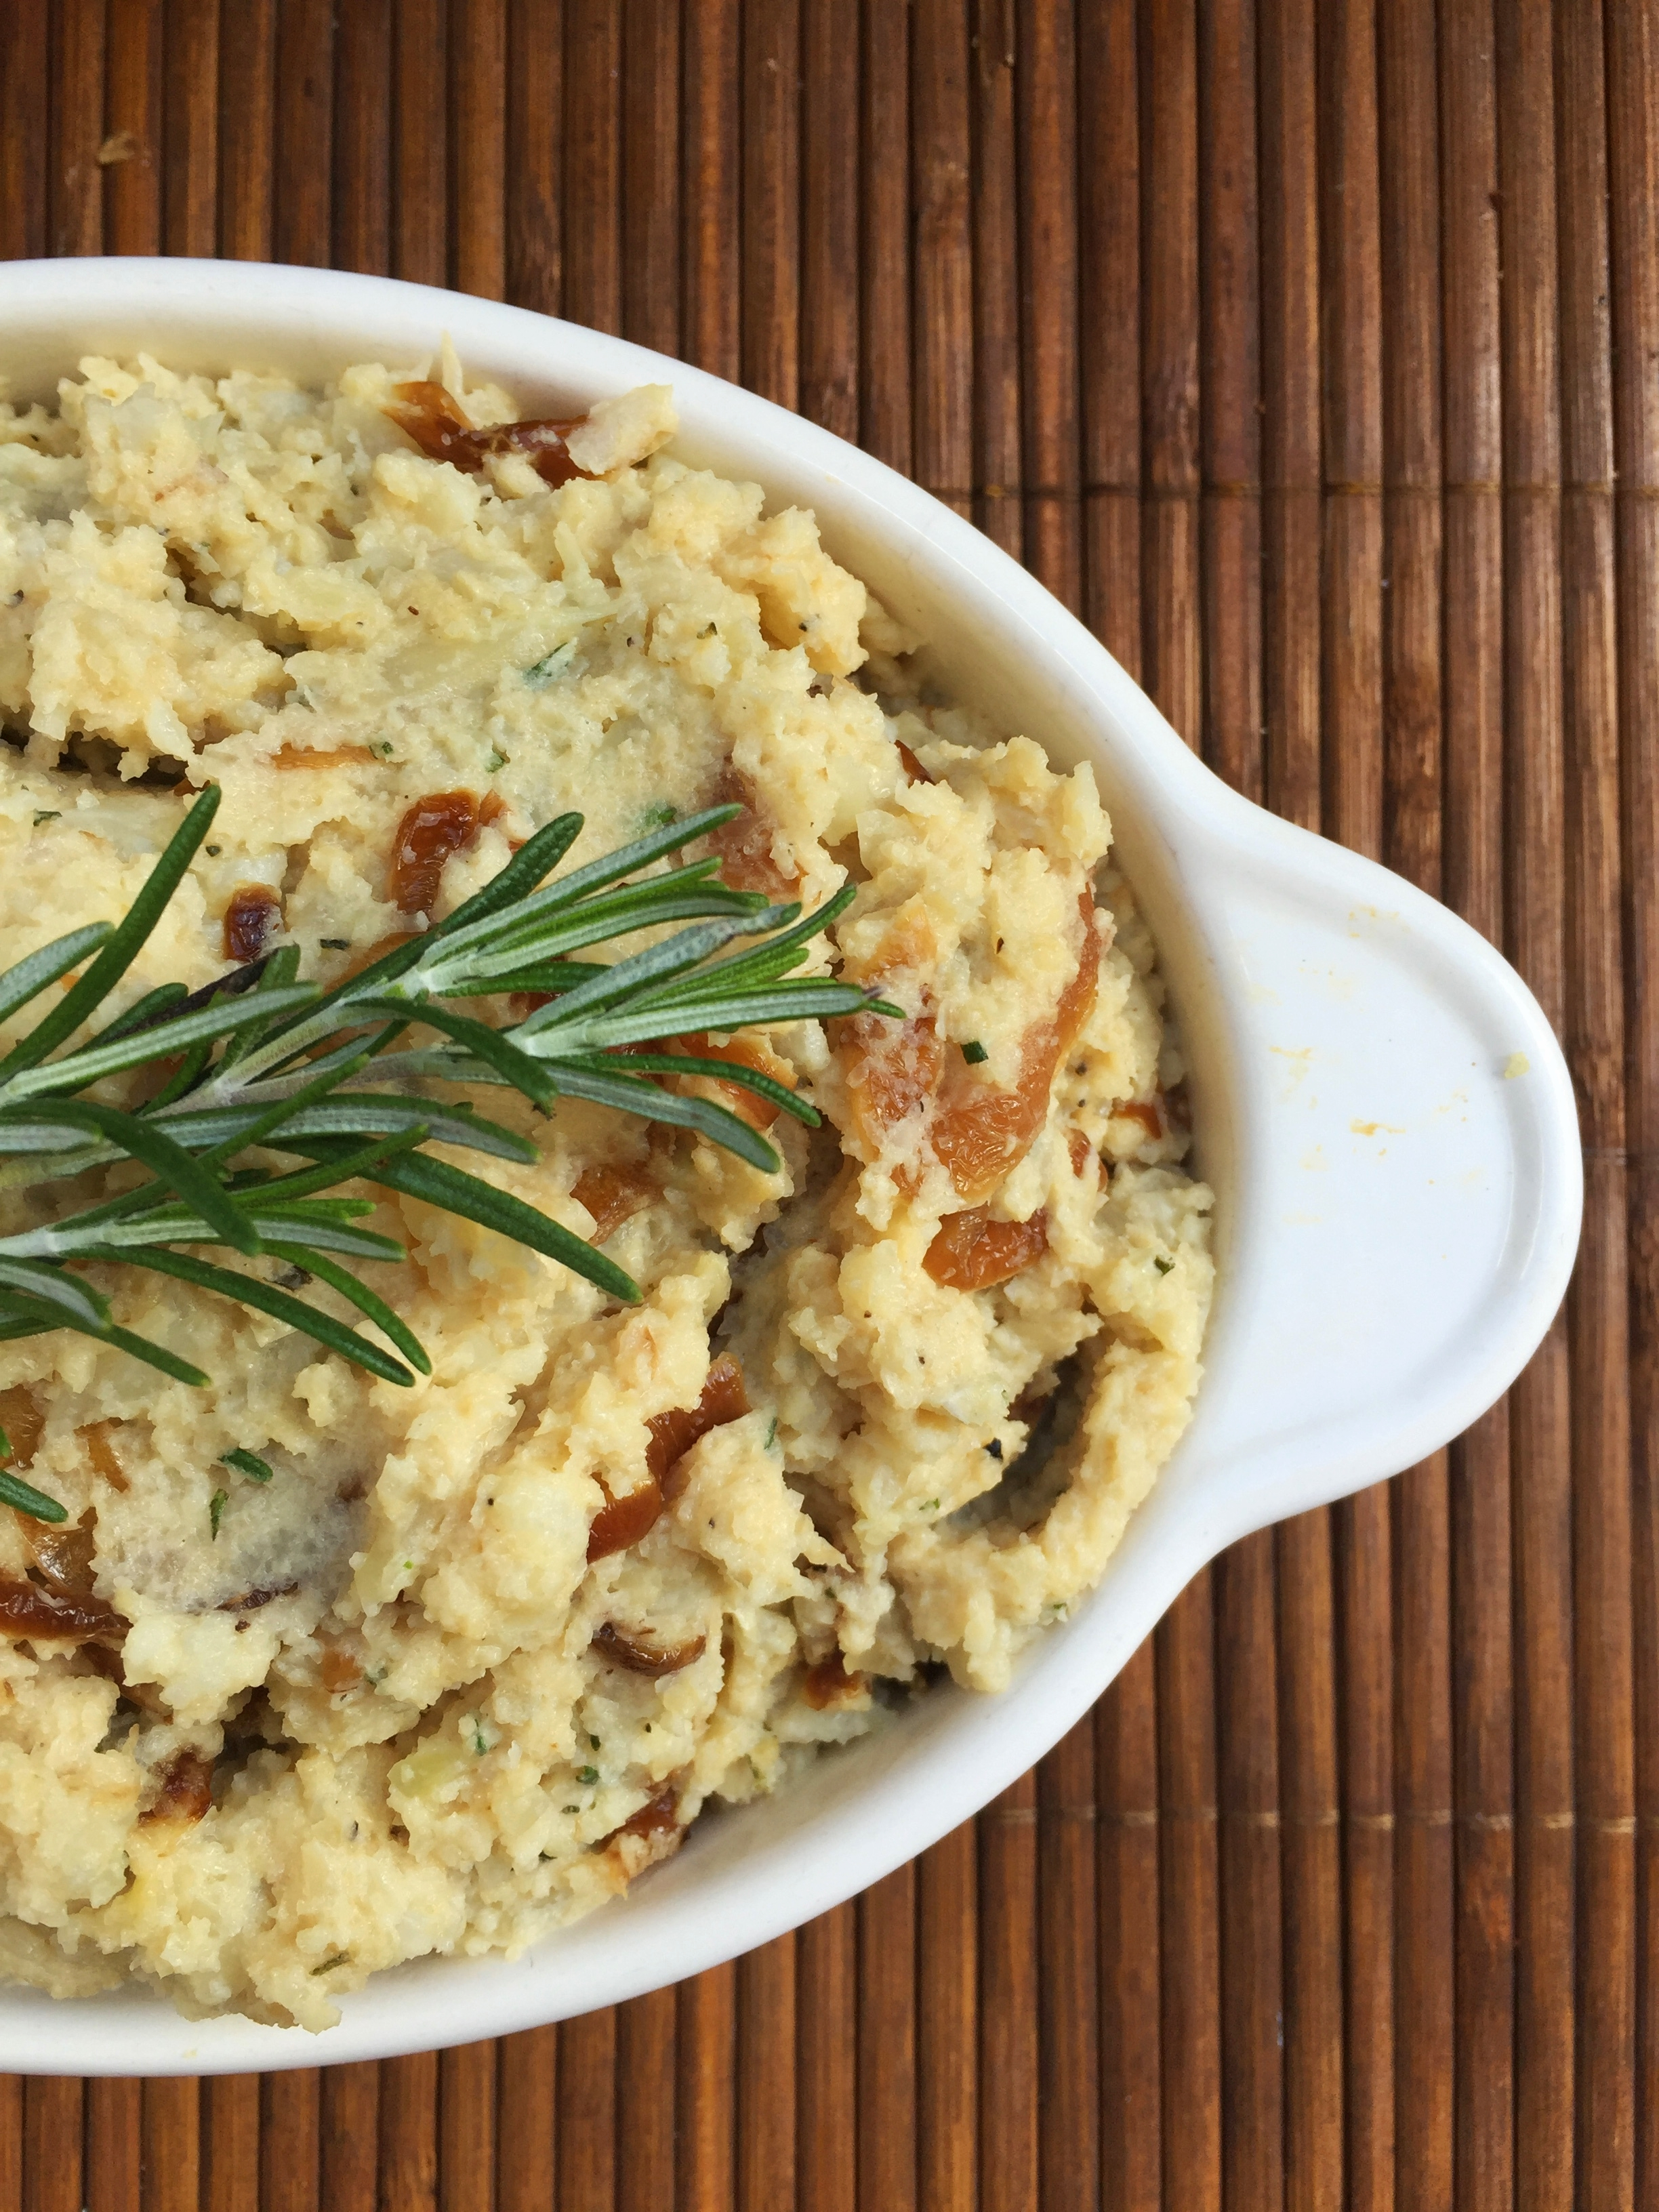 Whipped Cauliflower with Caramelized Onions | My Engineered Nutrition